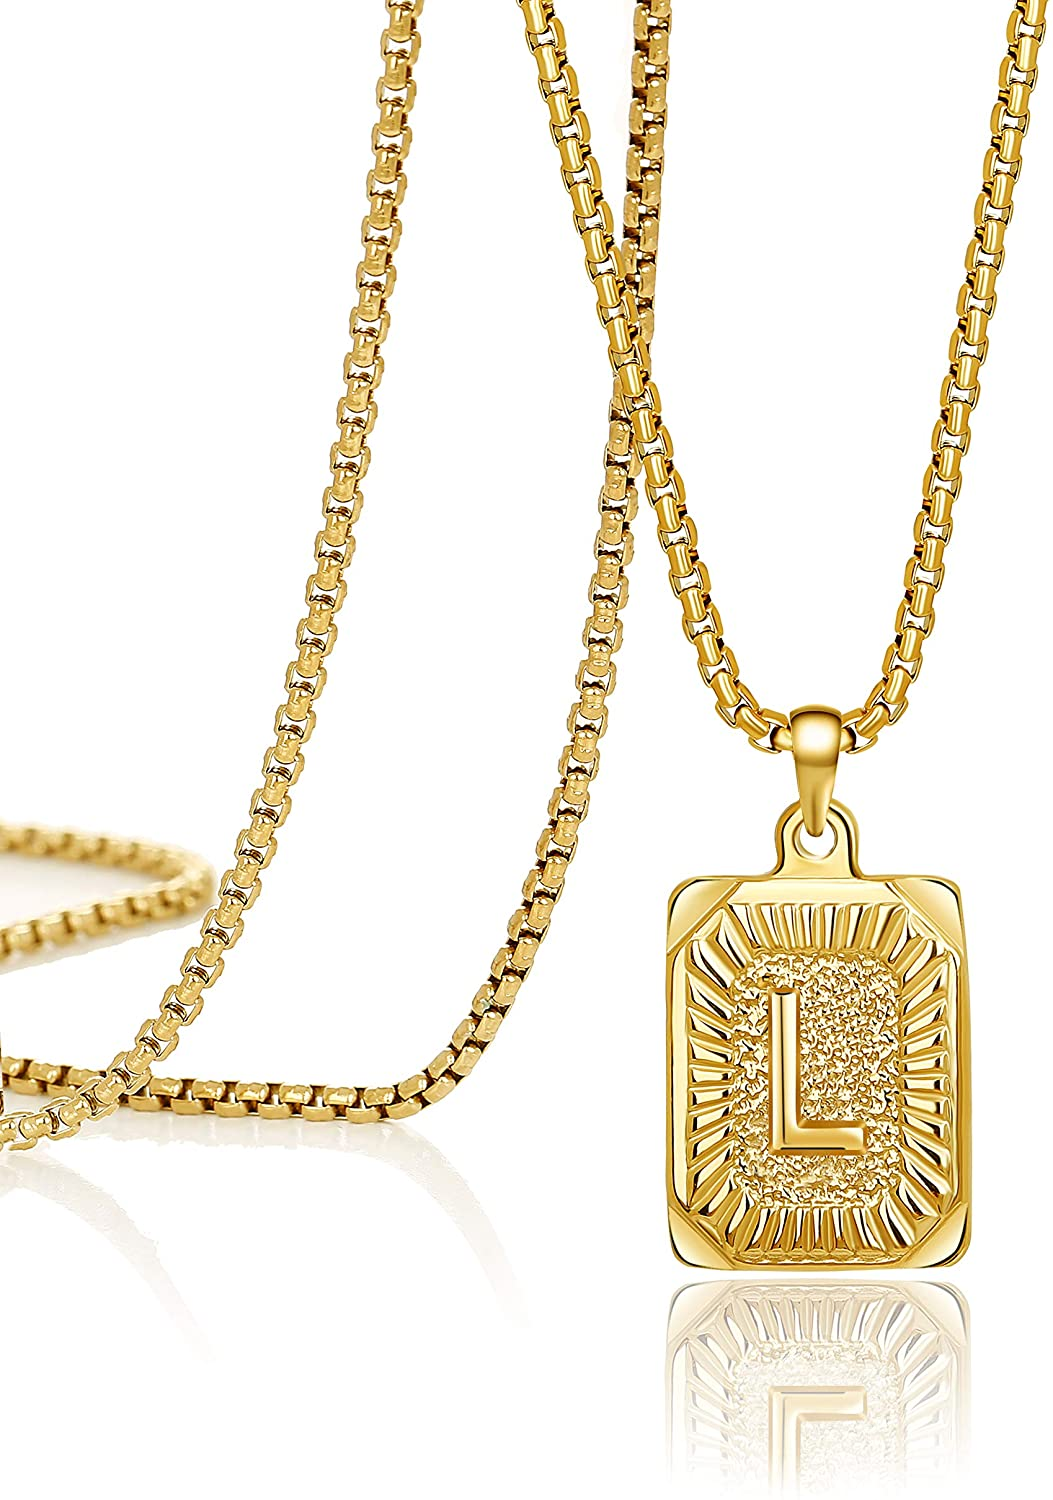 Joycuff Gold Initial Necklace for Women Pendant Necklaces 16 18 20 22 24 Inch Trendy Handmade Square Stainless Steel Jewelry